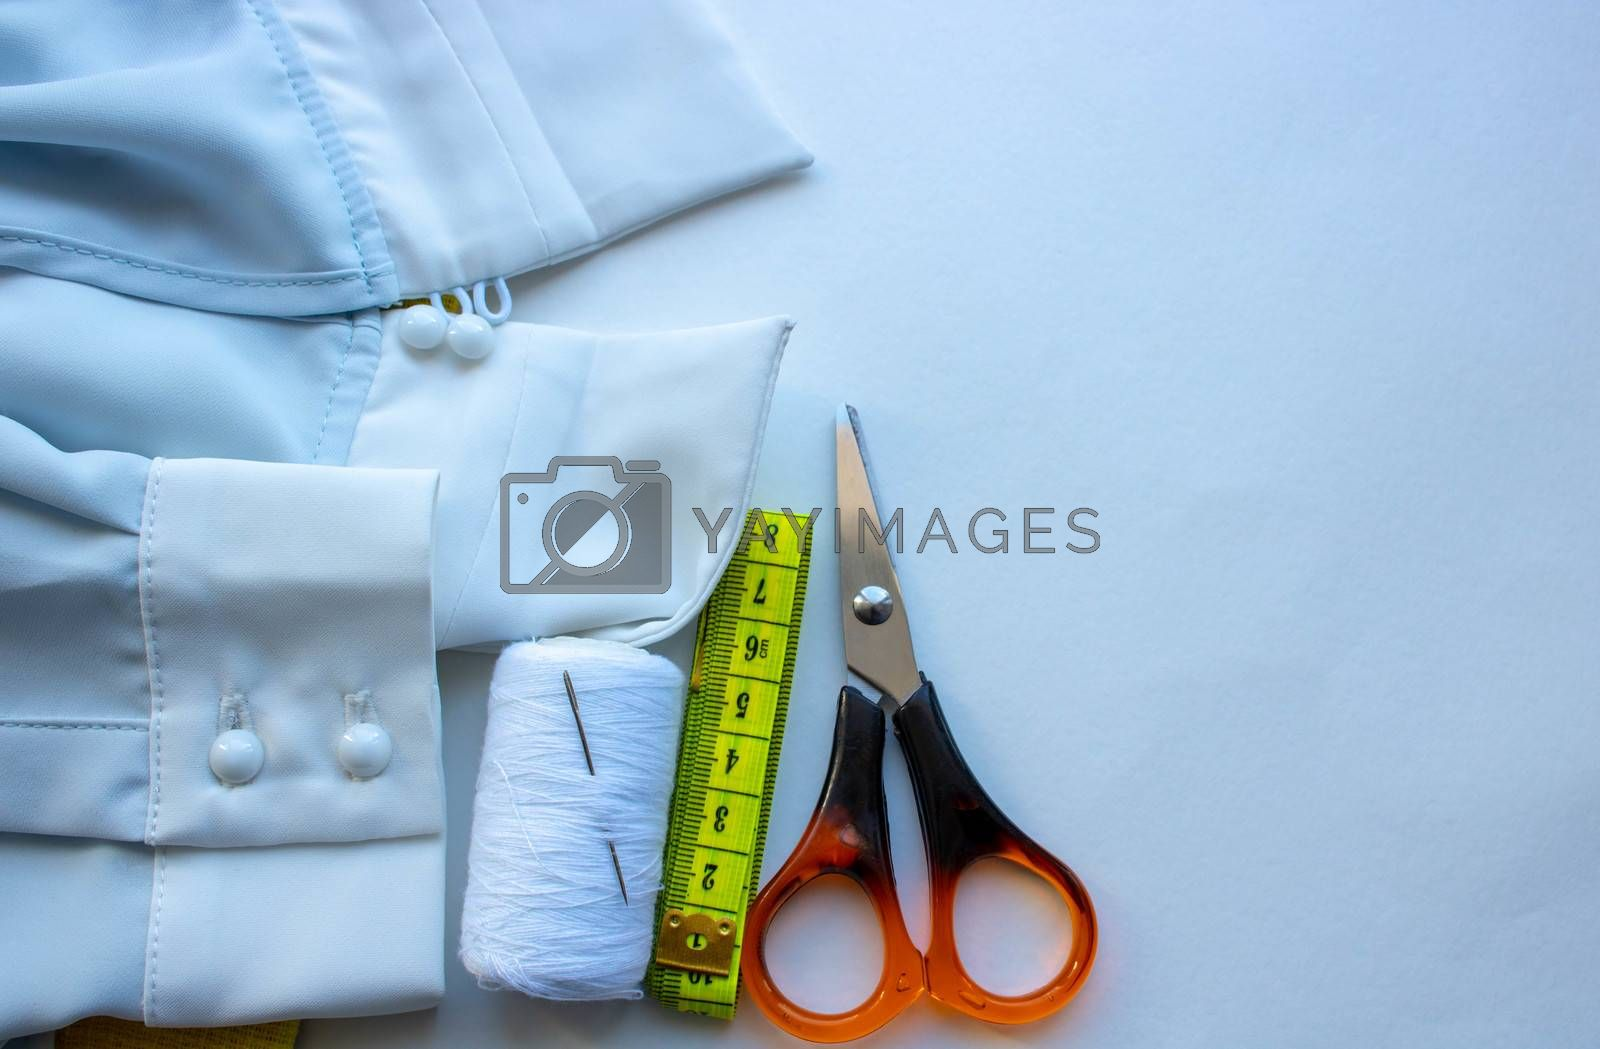 fabric for sewing clothes. Items for sewing clothes. Centimeter tape, tailoring scissors, thread, zipper and blue fabric for sewing clothes.